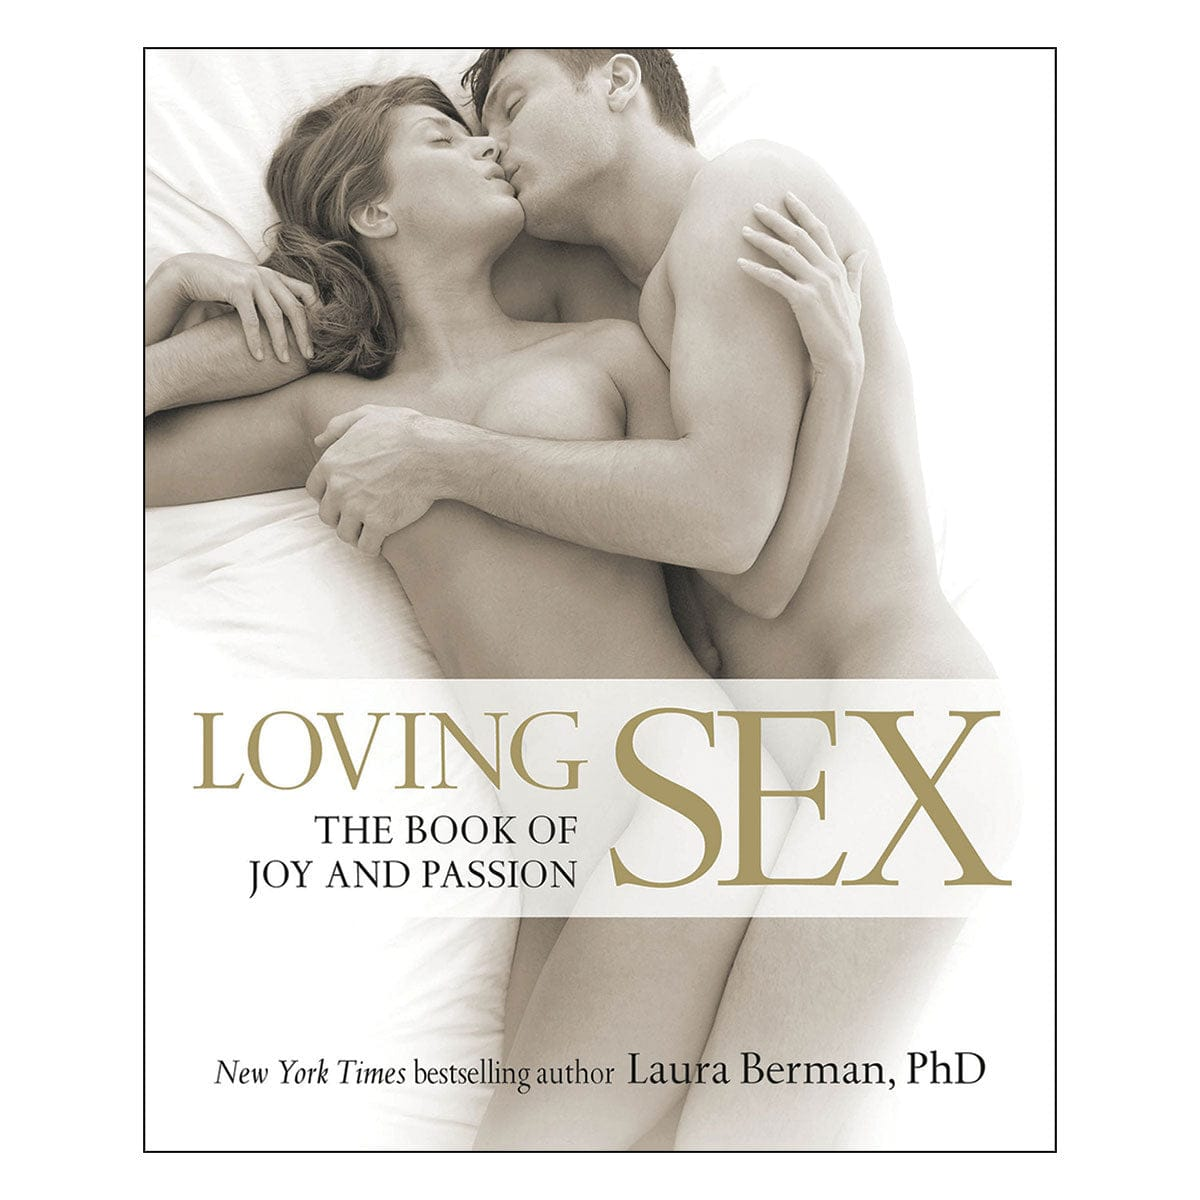 Loving Sex: The Book of Joy and Passion by DK Publishing - rolik